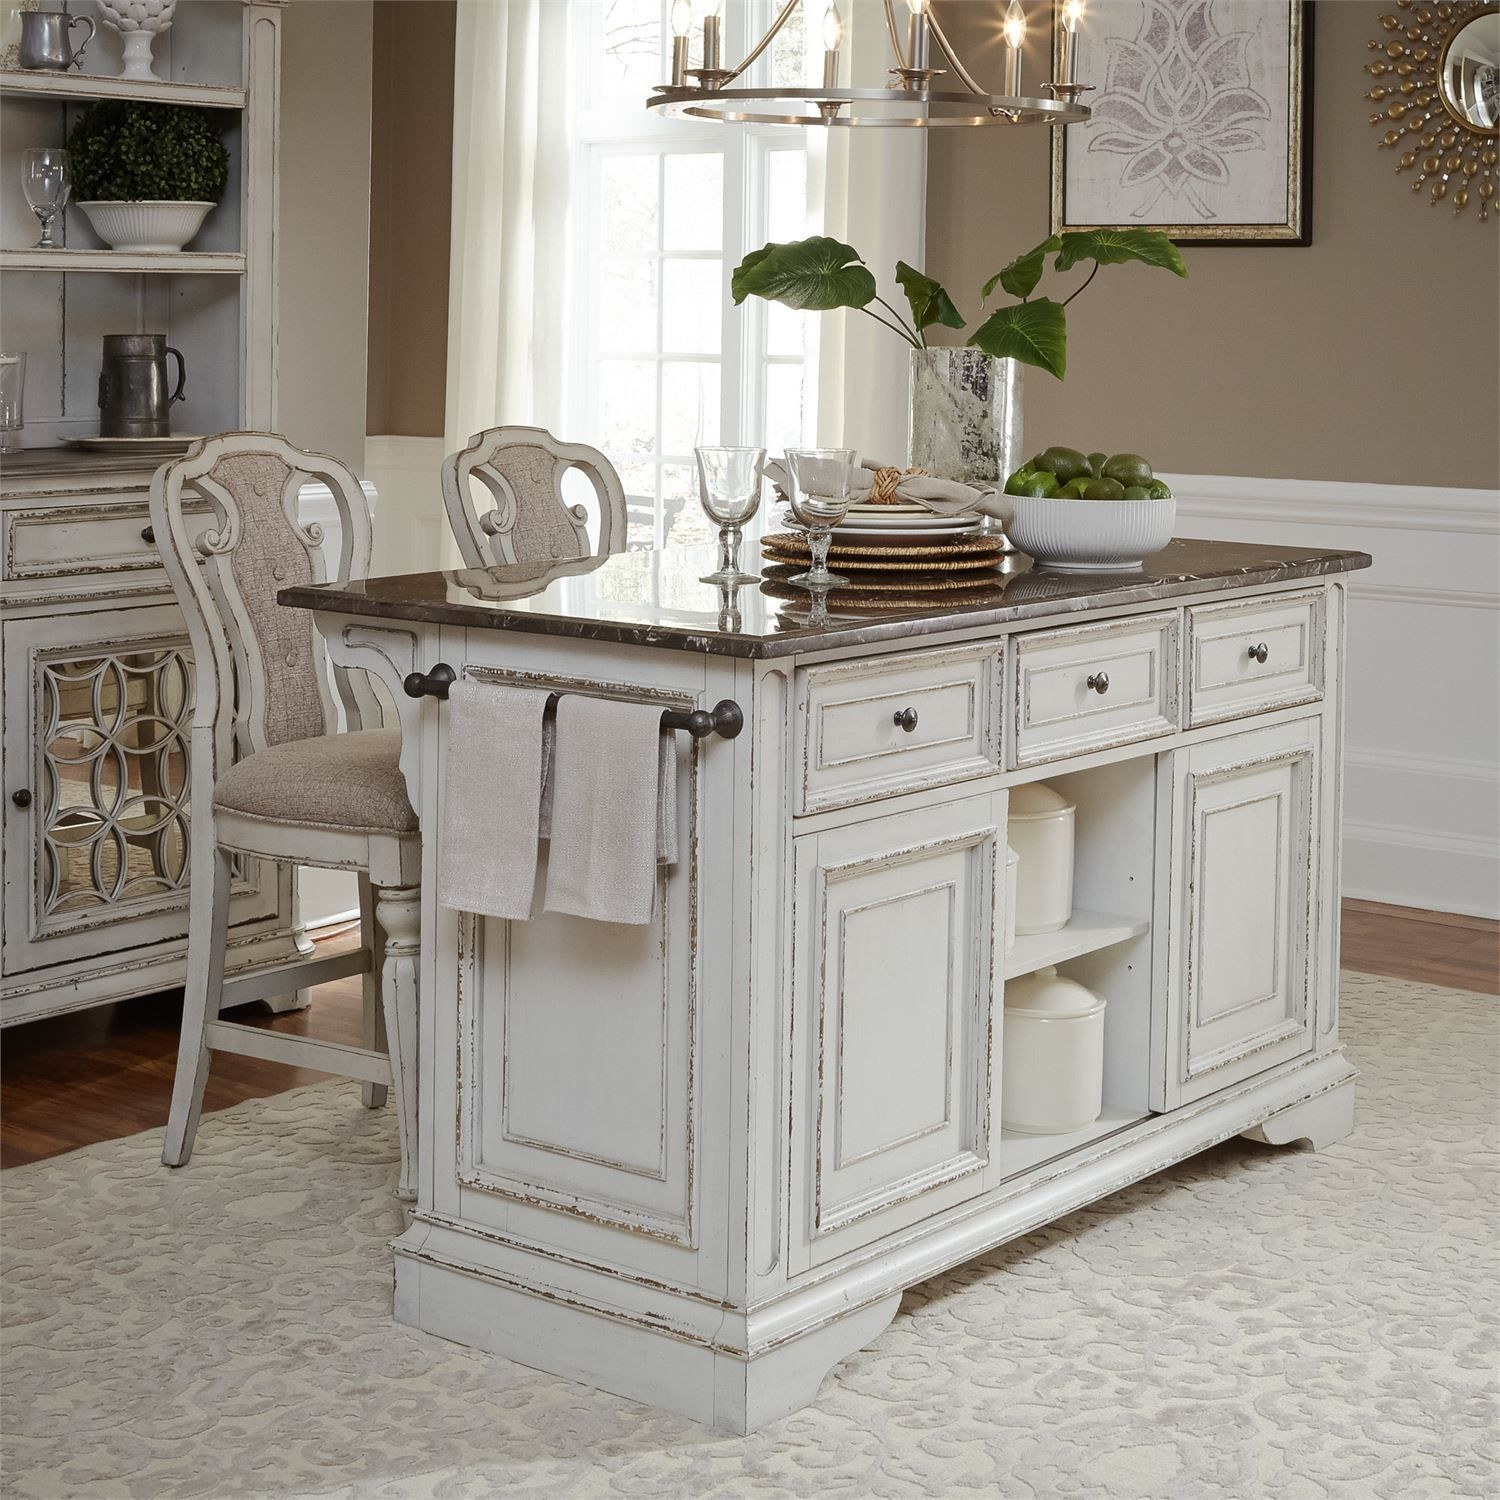 Kitchen Island Furniture: Magnolia Manor Antique White Kitchen Island Set From